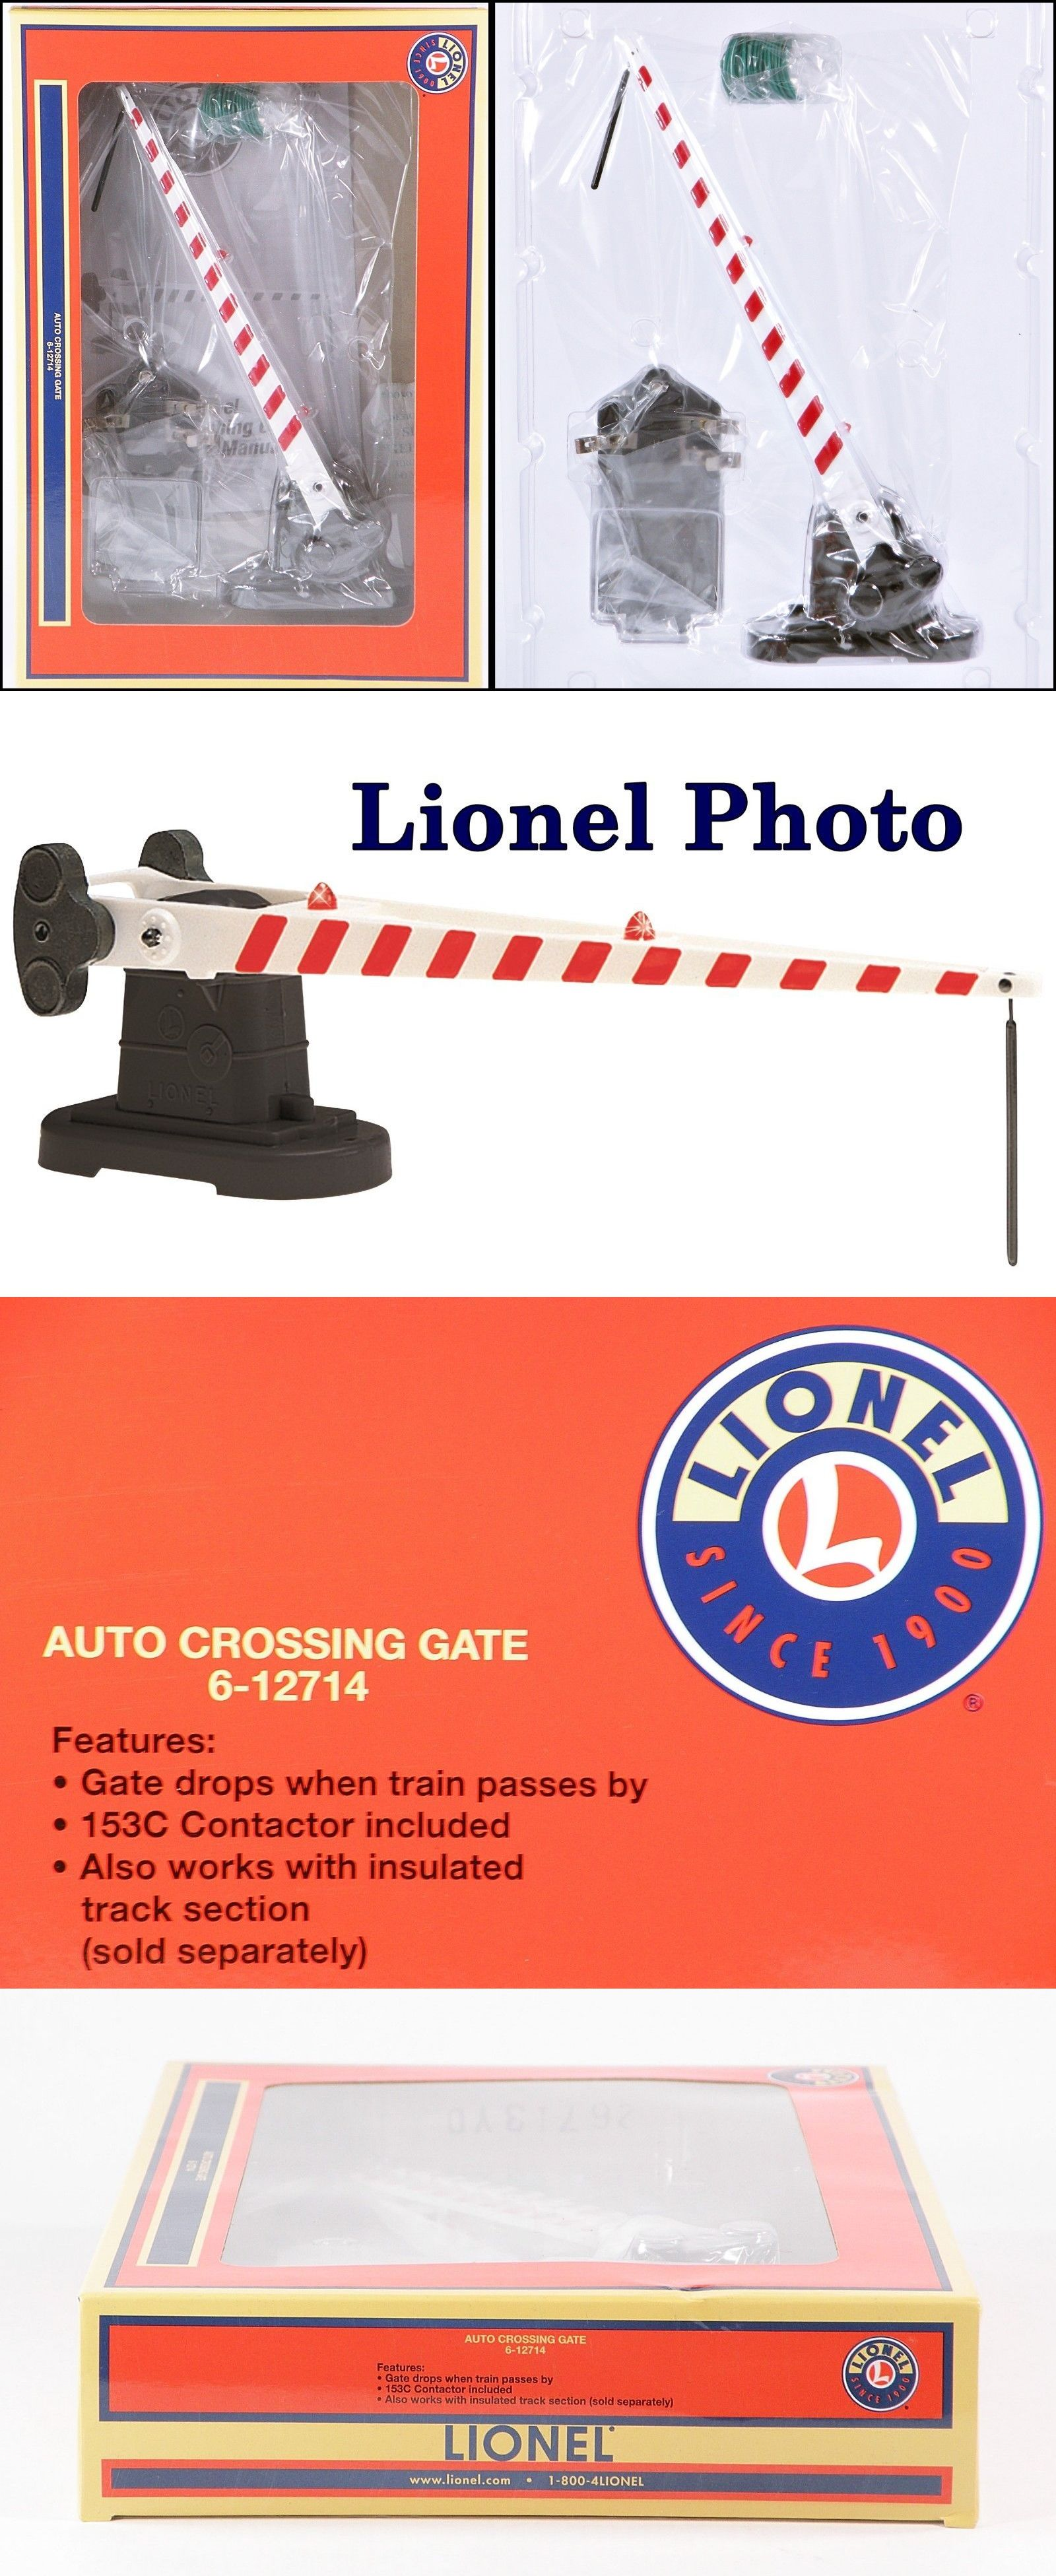 signals 81051 lionel 6 12714 auto crossing gate w red light 1993 2017 c10 nib buy it now only 16 on ebay signals lionel crossing light [ 1600 x 3903 Pixel ]